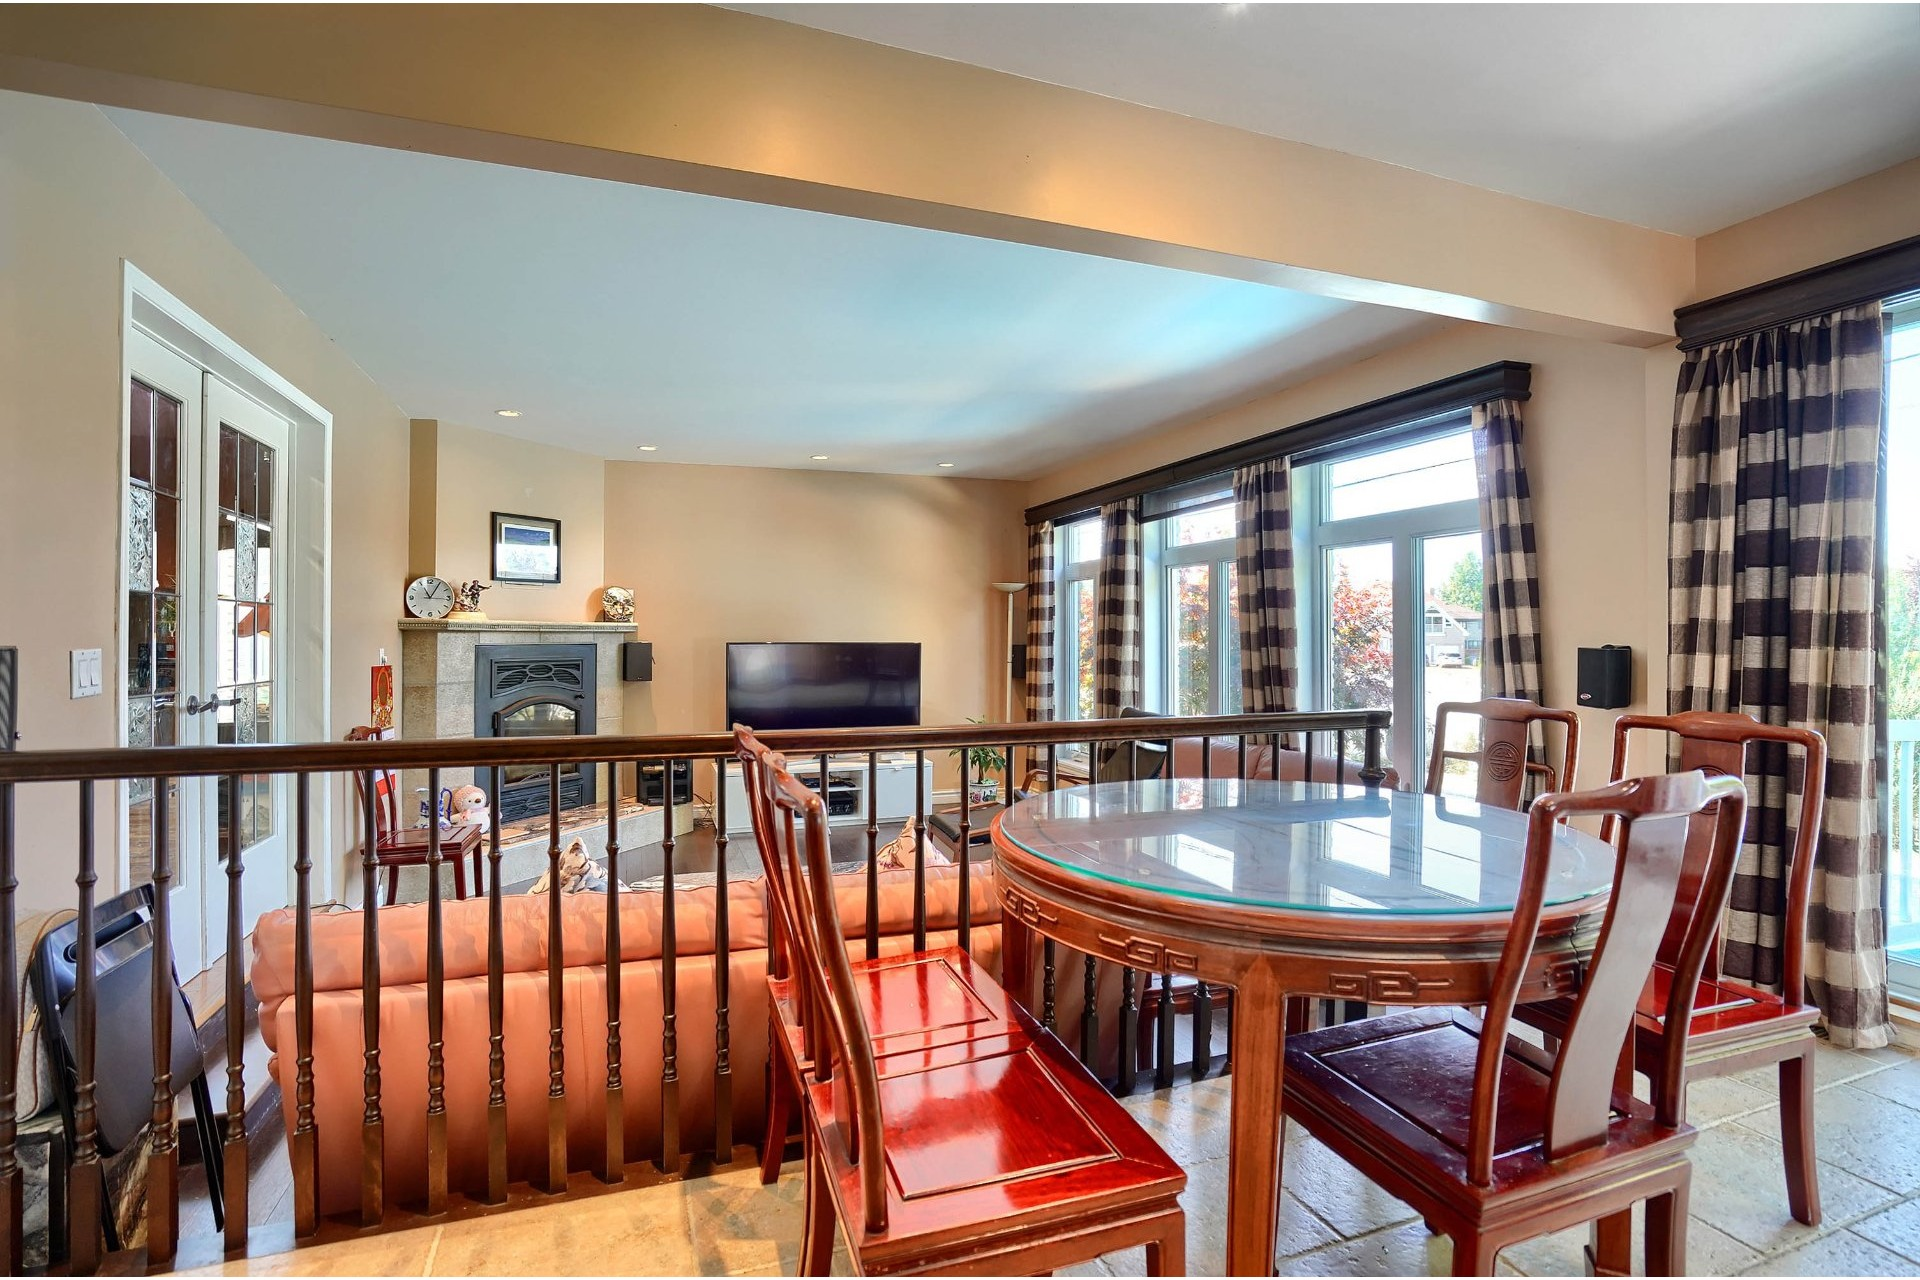 image 6 - House For sale Brossard - 18 rooms